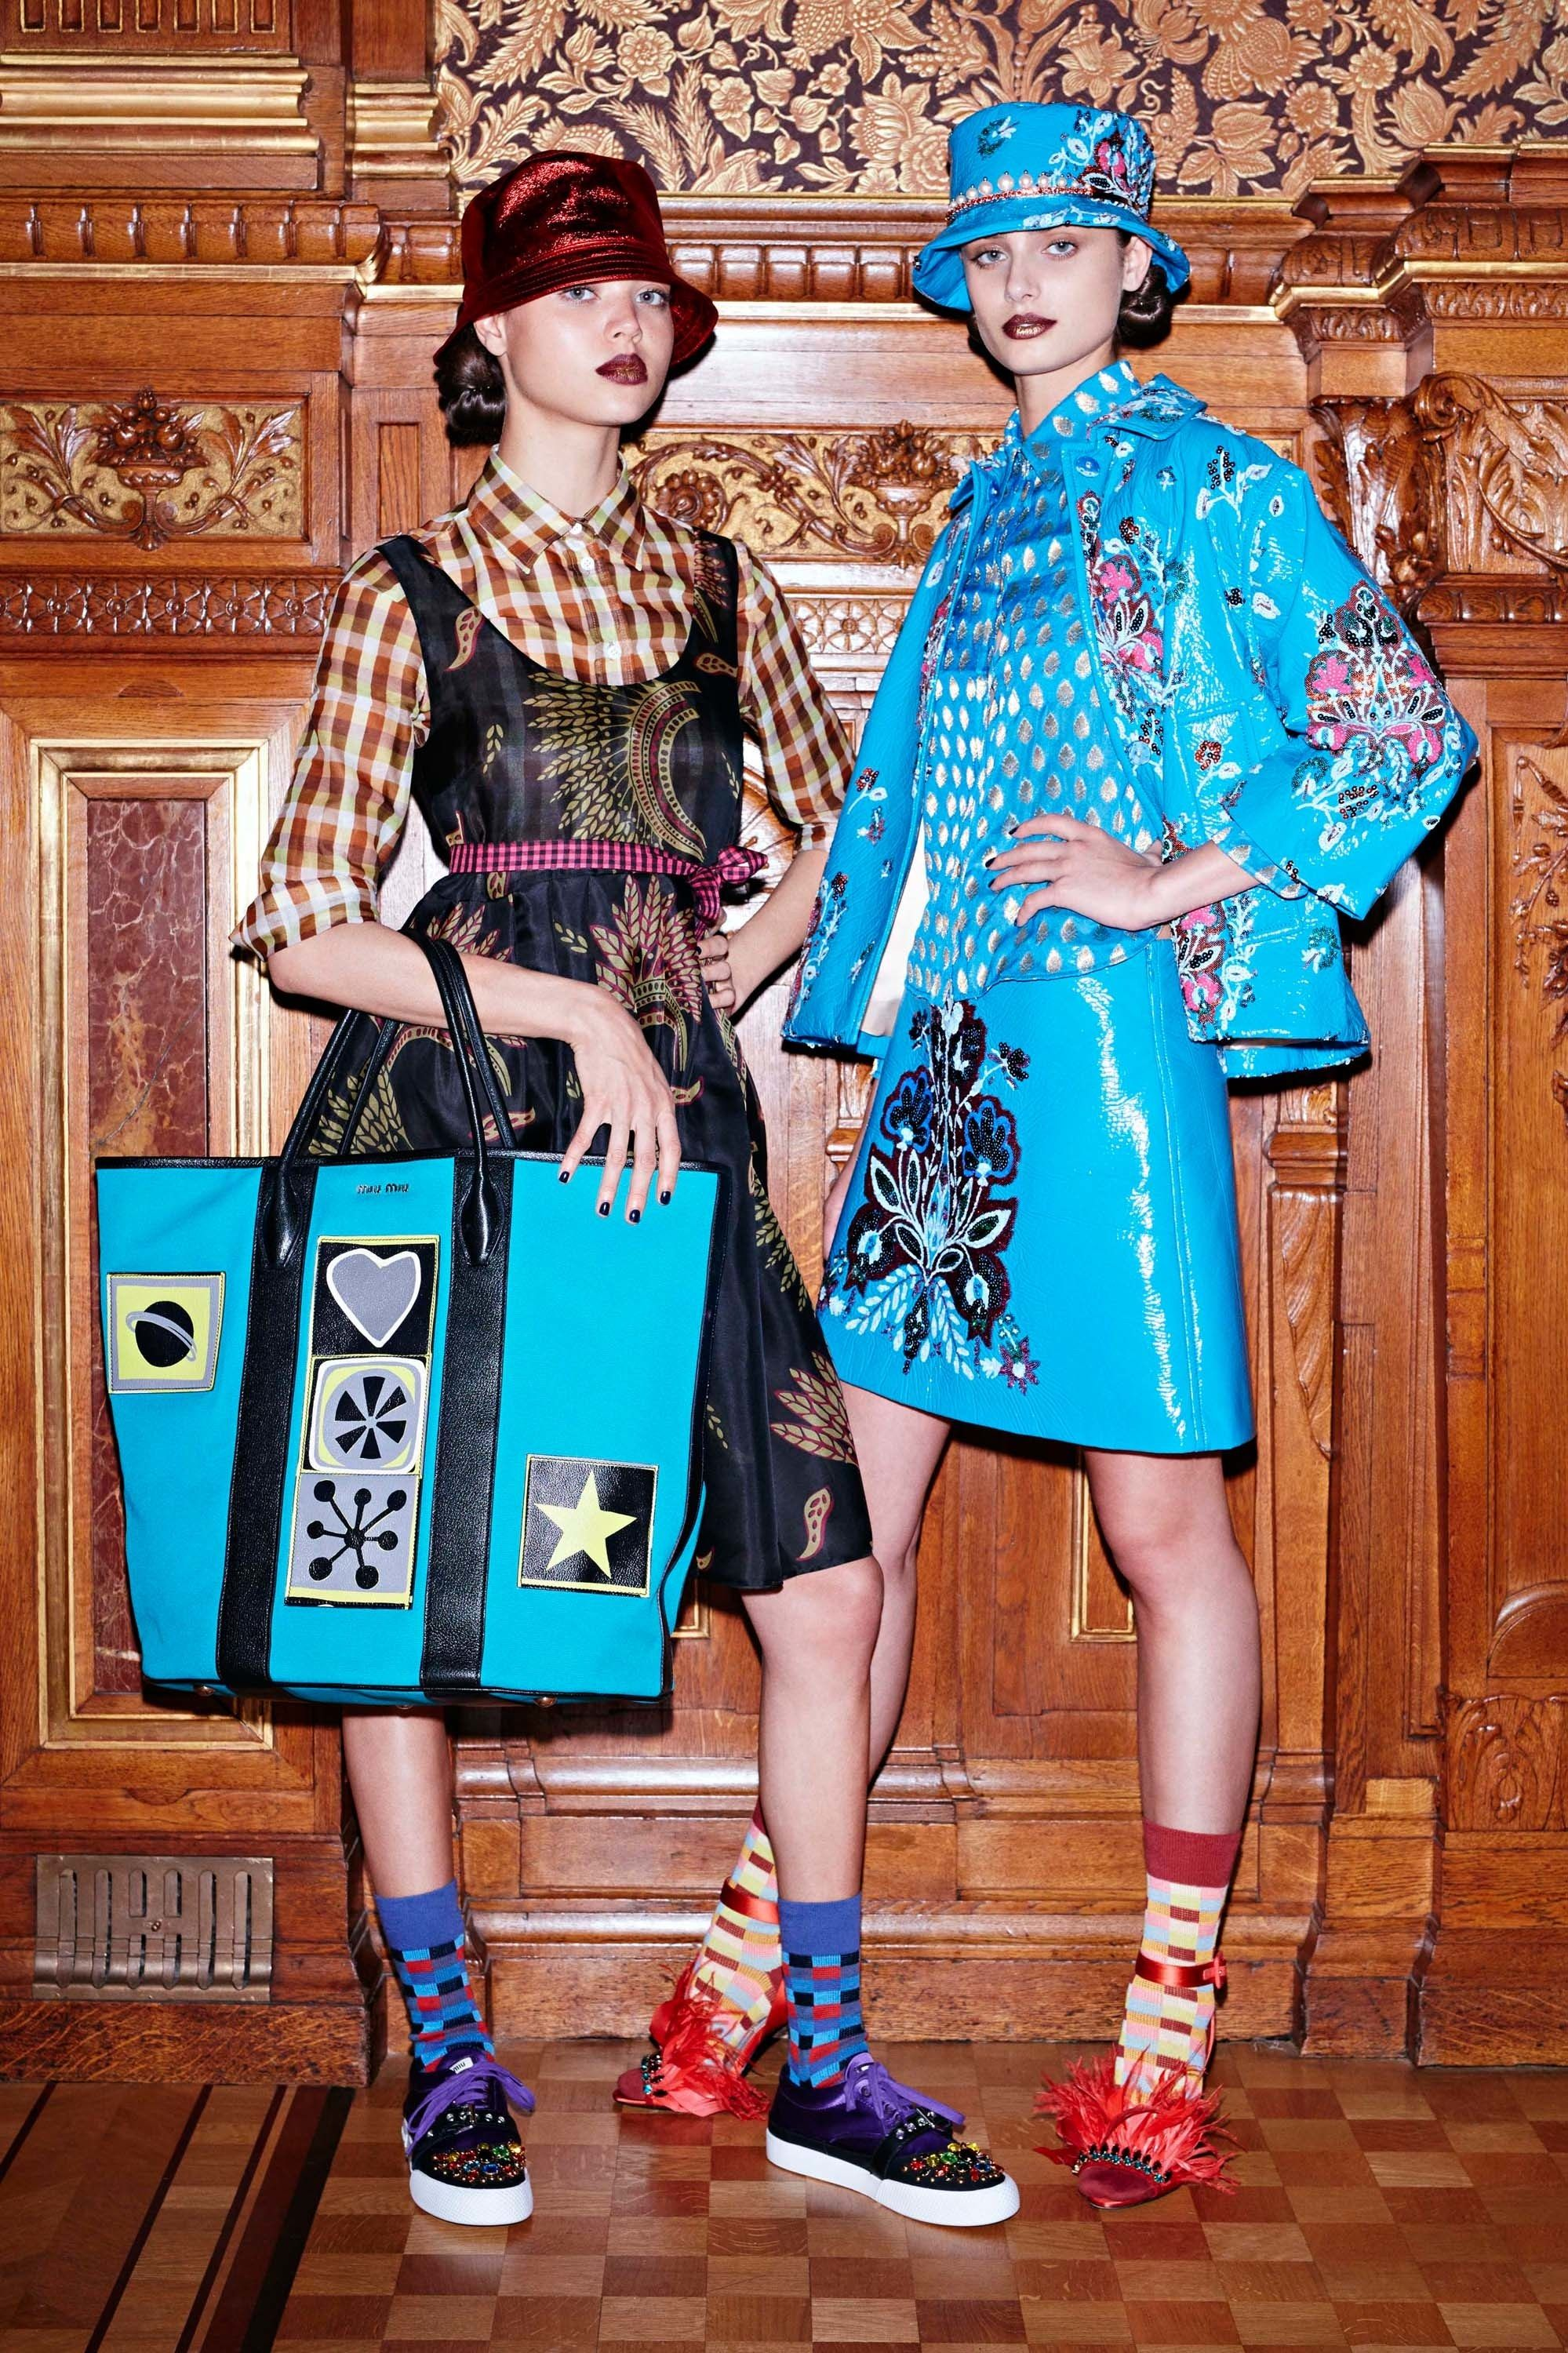 MiuMiu  fashion  Koshchenets Miu Miu Resort 2017 Collection Photos - Vogue b4bdff828fad6